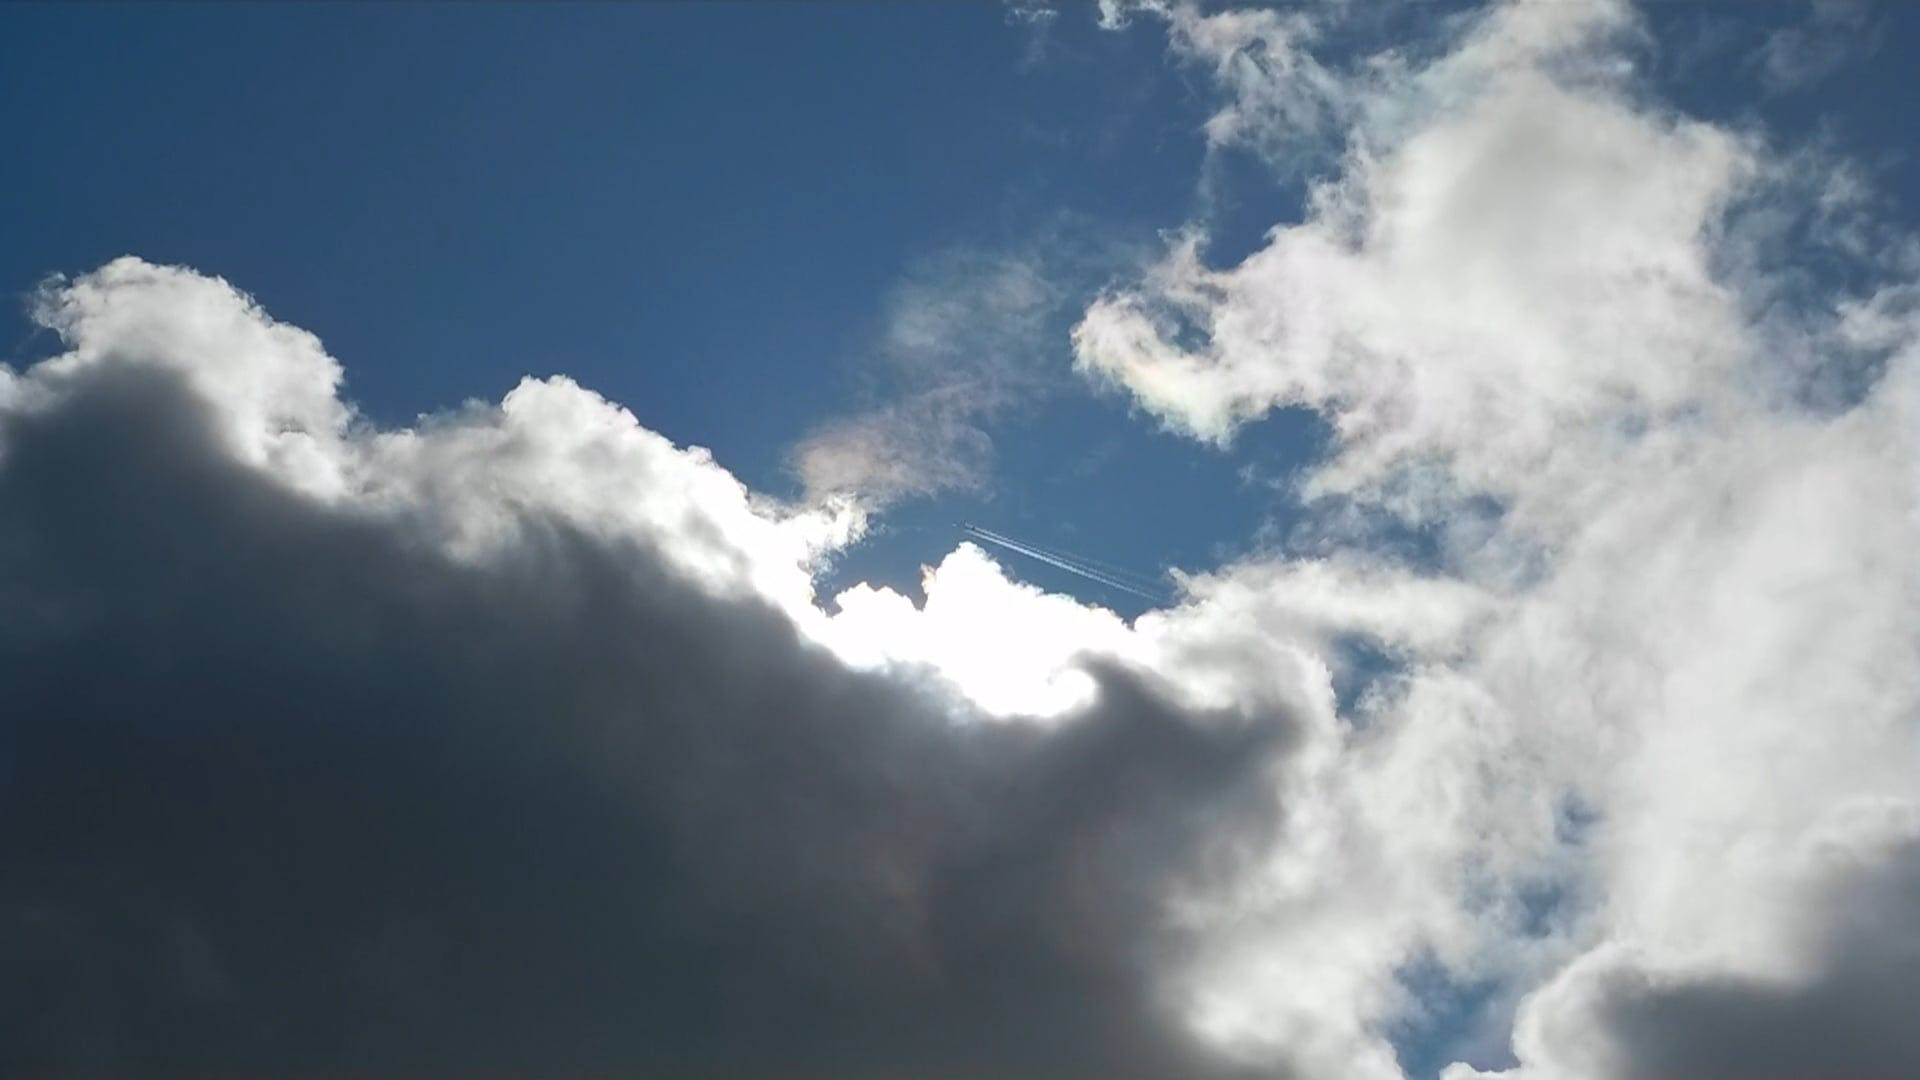 Jet On The Cloudy Sky